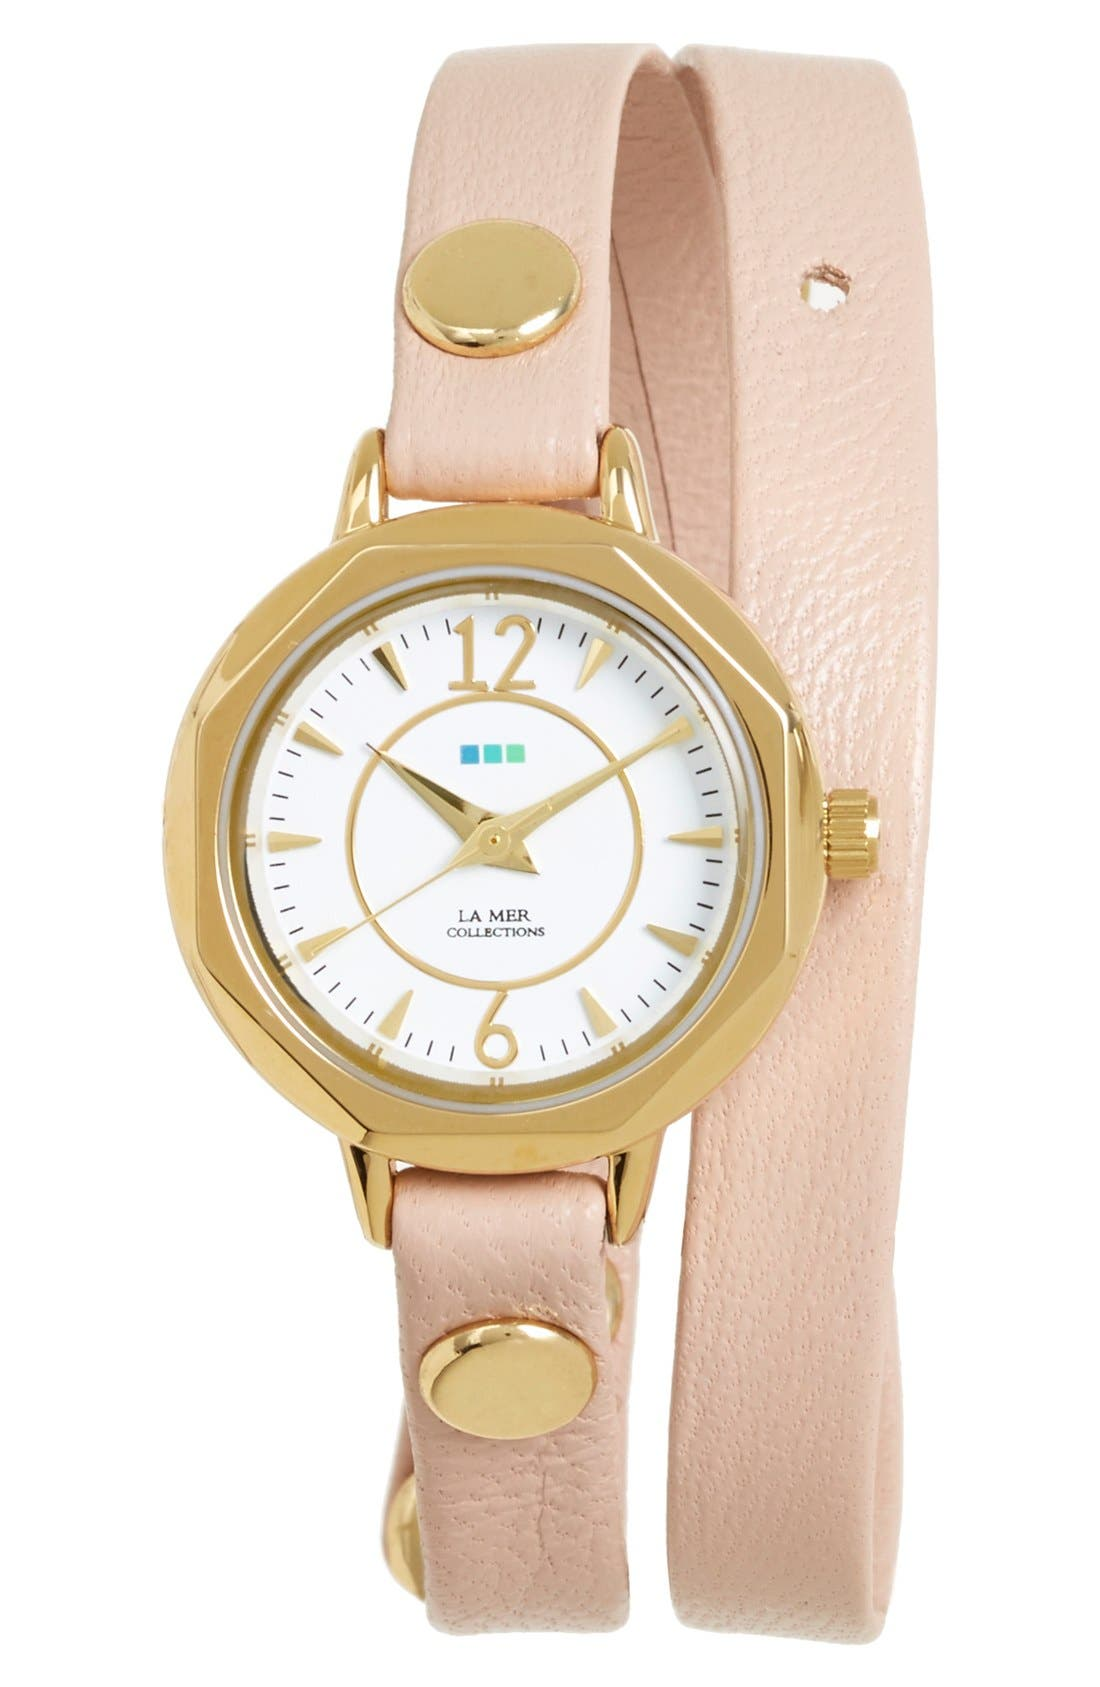 Alternate Image 1 Selected - La Mer Collections 'Del Mar' Leather Strap Wrap Watch, 19mm